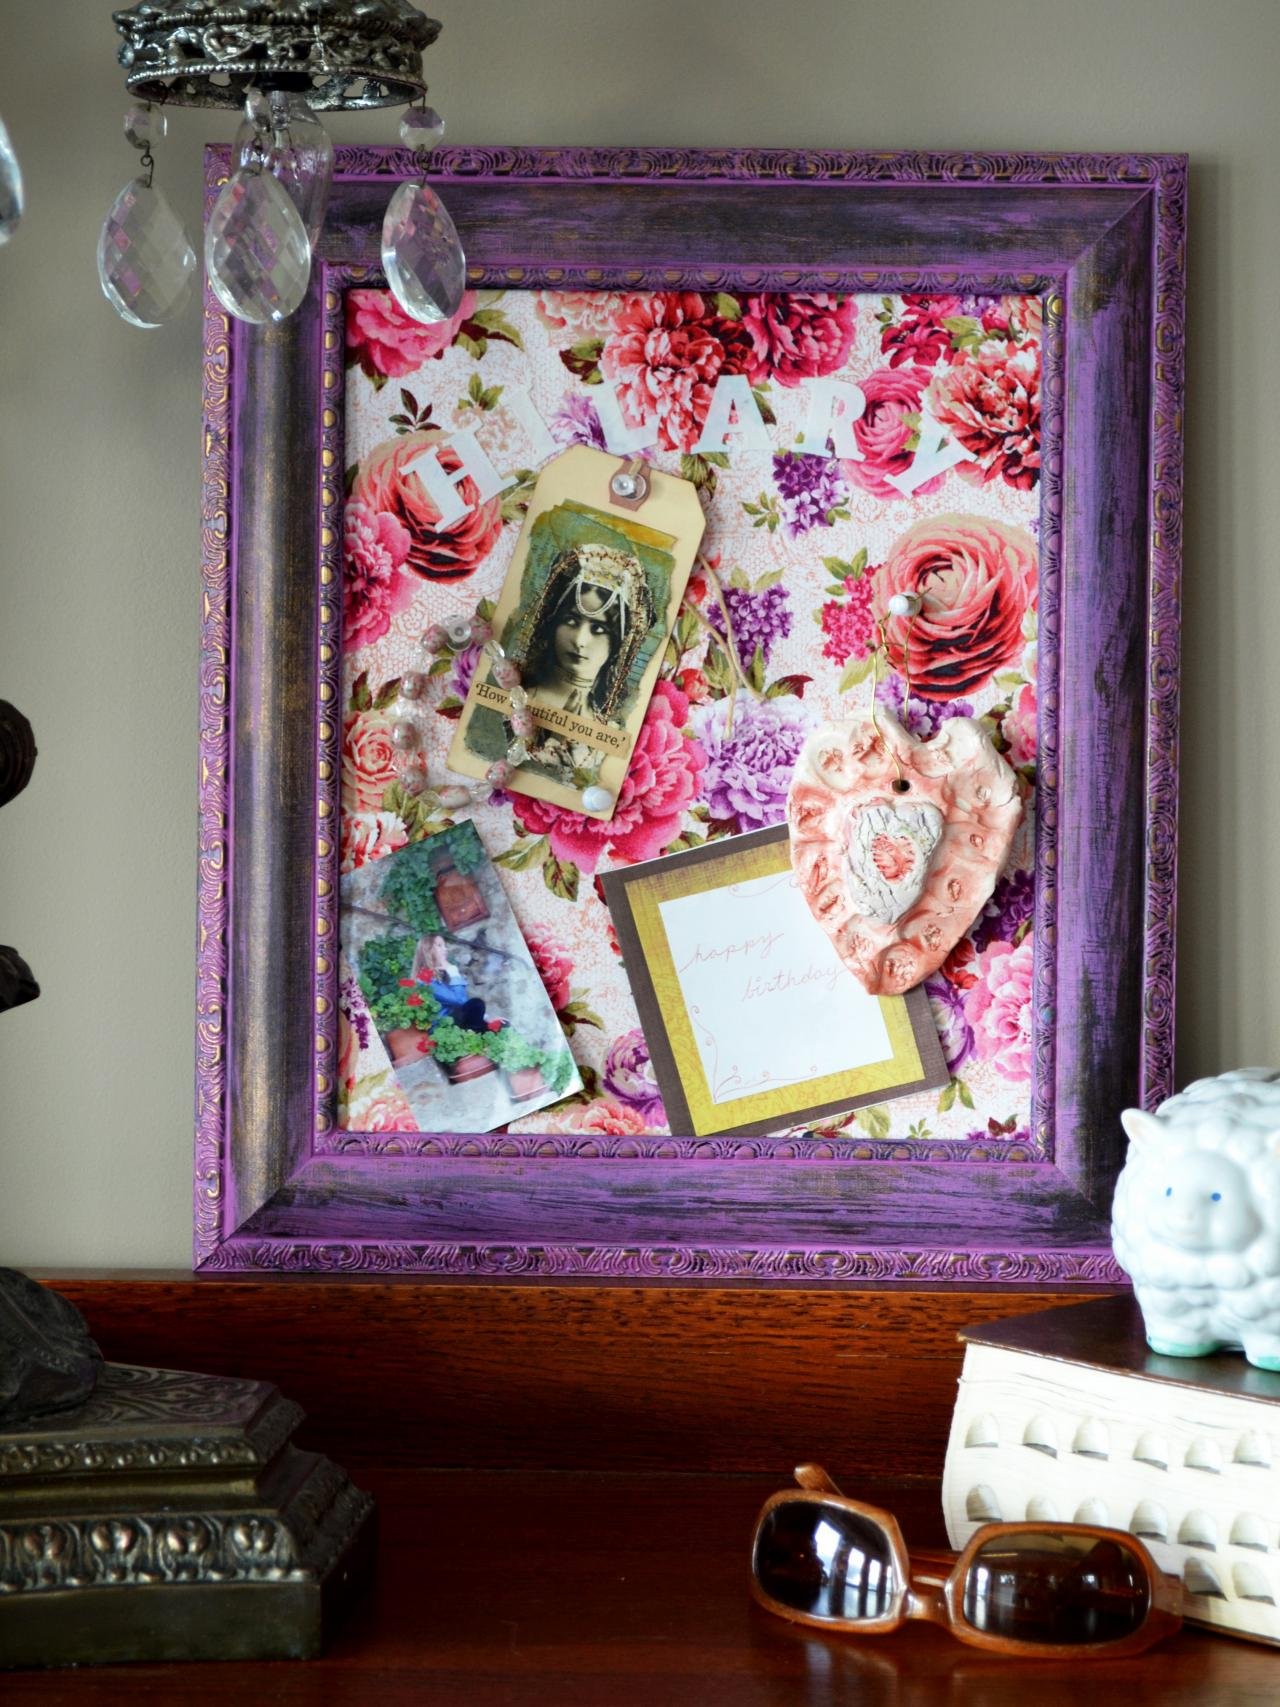 This summer's project with your kids… make a cork message board for their rooms out of an old picture frame. Crafting together is a great way to spend time together.  Here is the STEP BY STEP.